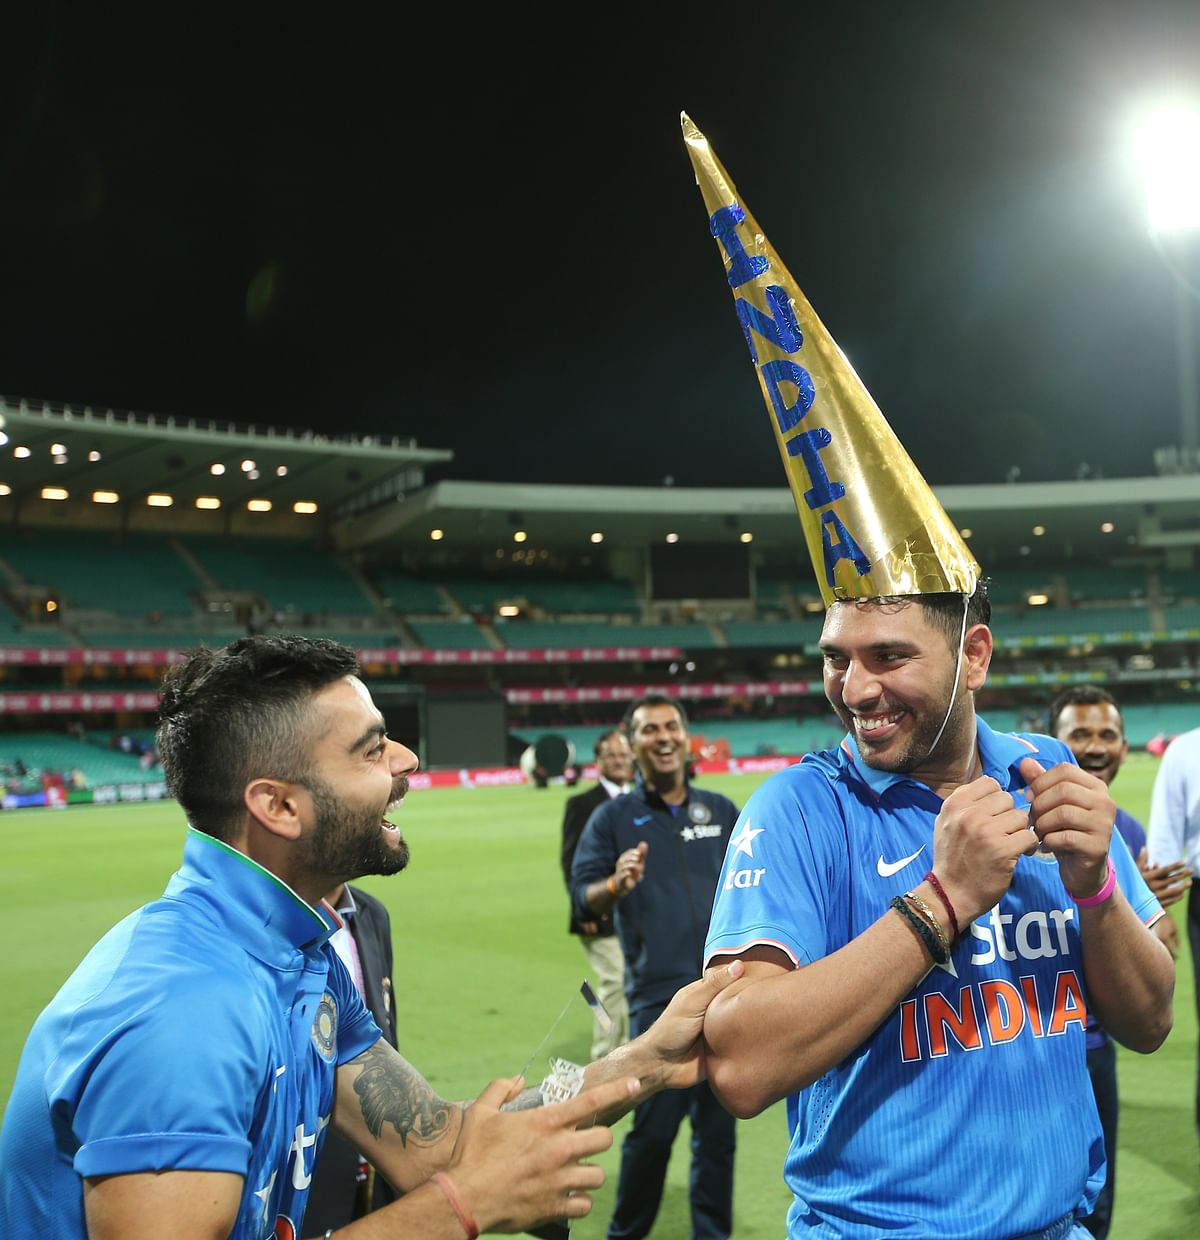 Virat Kohli and Yuvraj Singh share a laugh after India won the T20 series against Australia 3-0 in Jan, 2016.